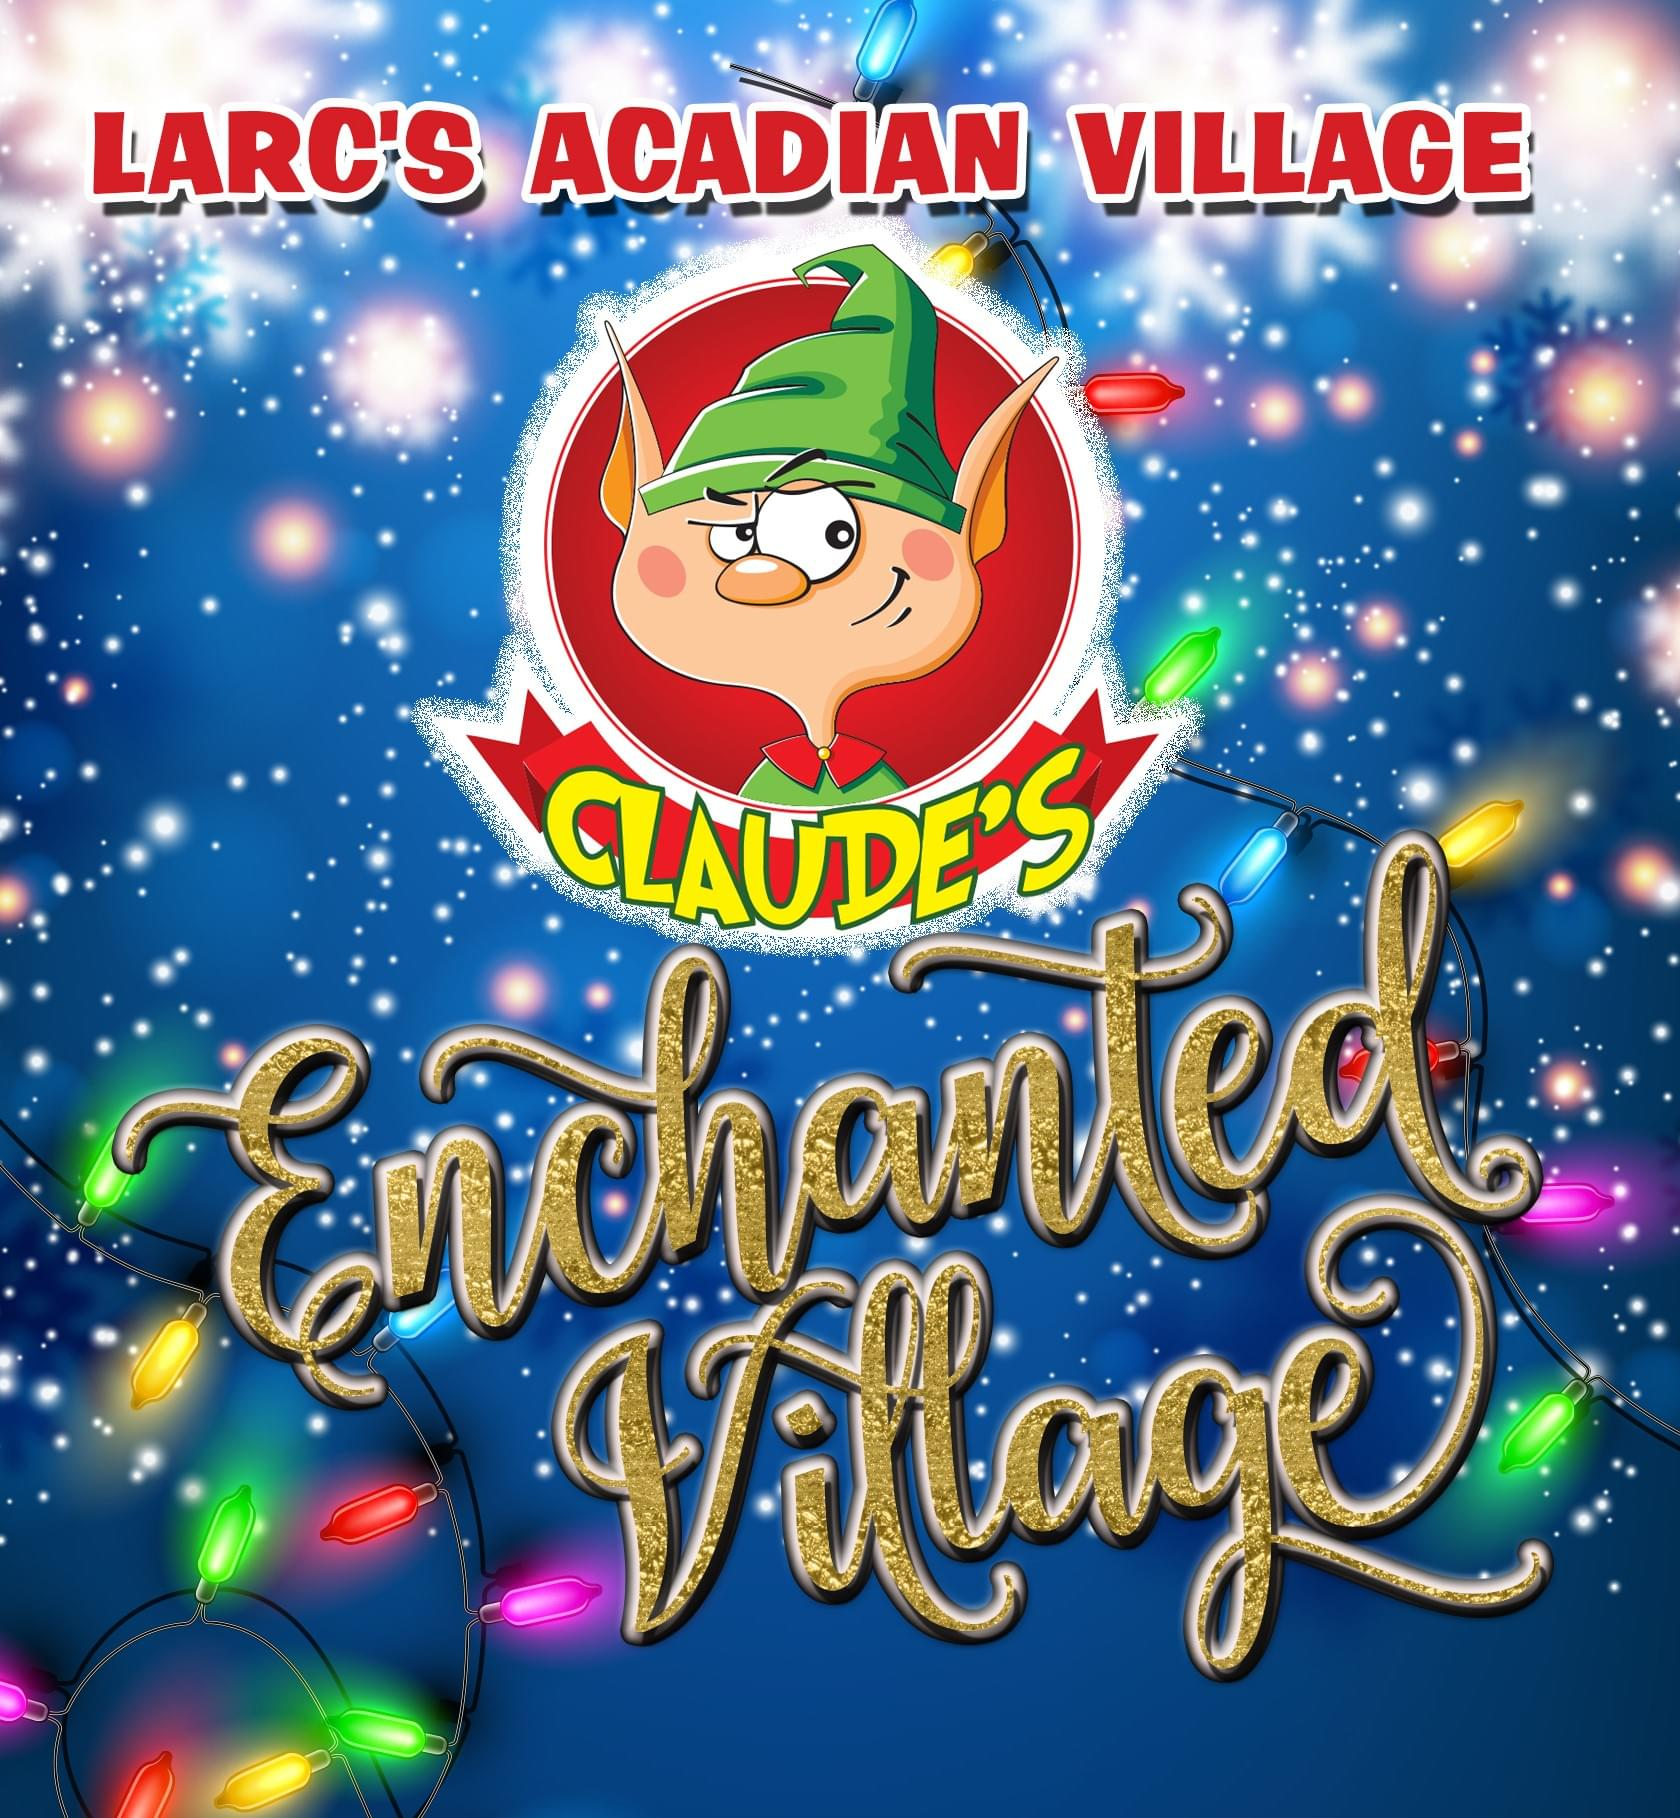 LARC's Acadian Village will host its 38th annual Christmas festival fundraiser, Noel Acadien au Village presented by LUS Fiber, from November 30th ...